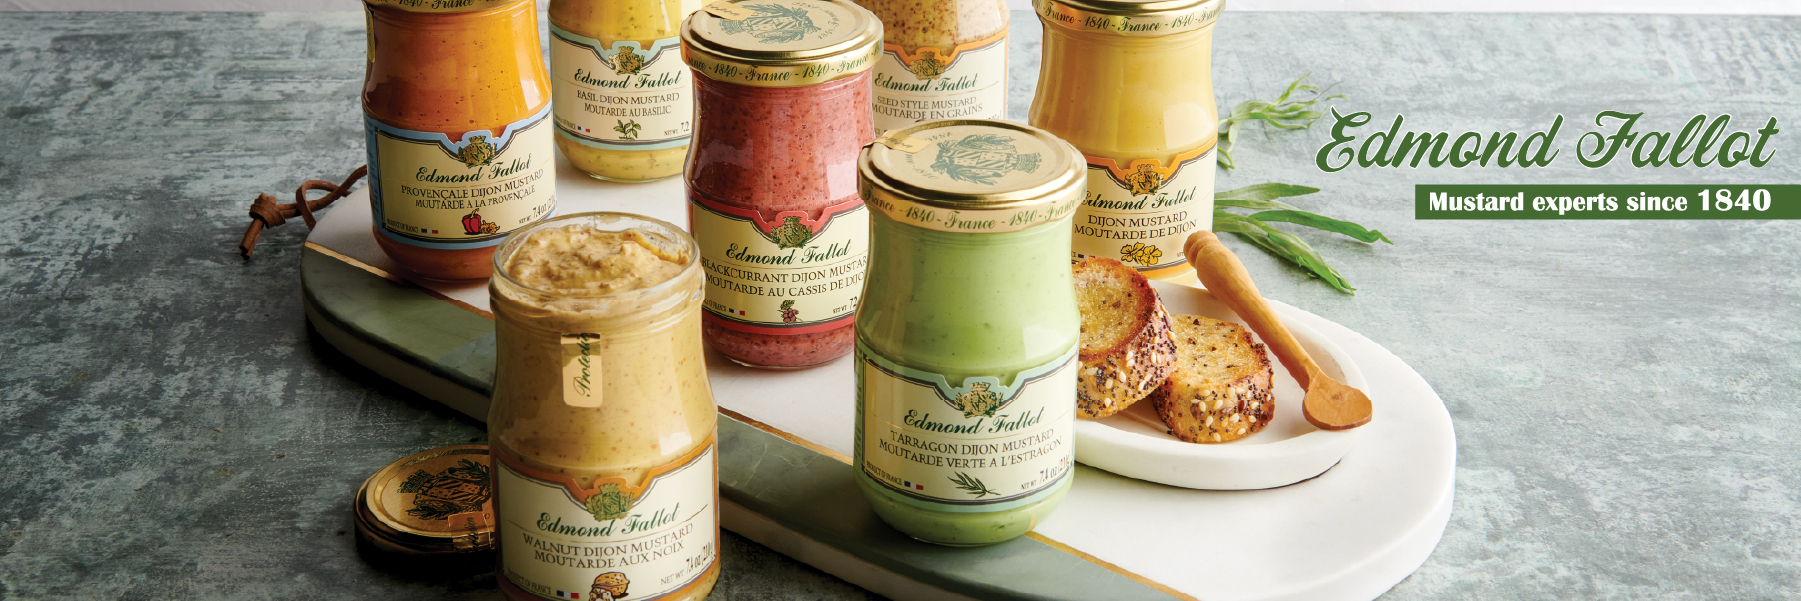 Edmond Fallot mustards - different flavors on a piece of toast